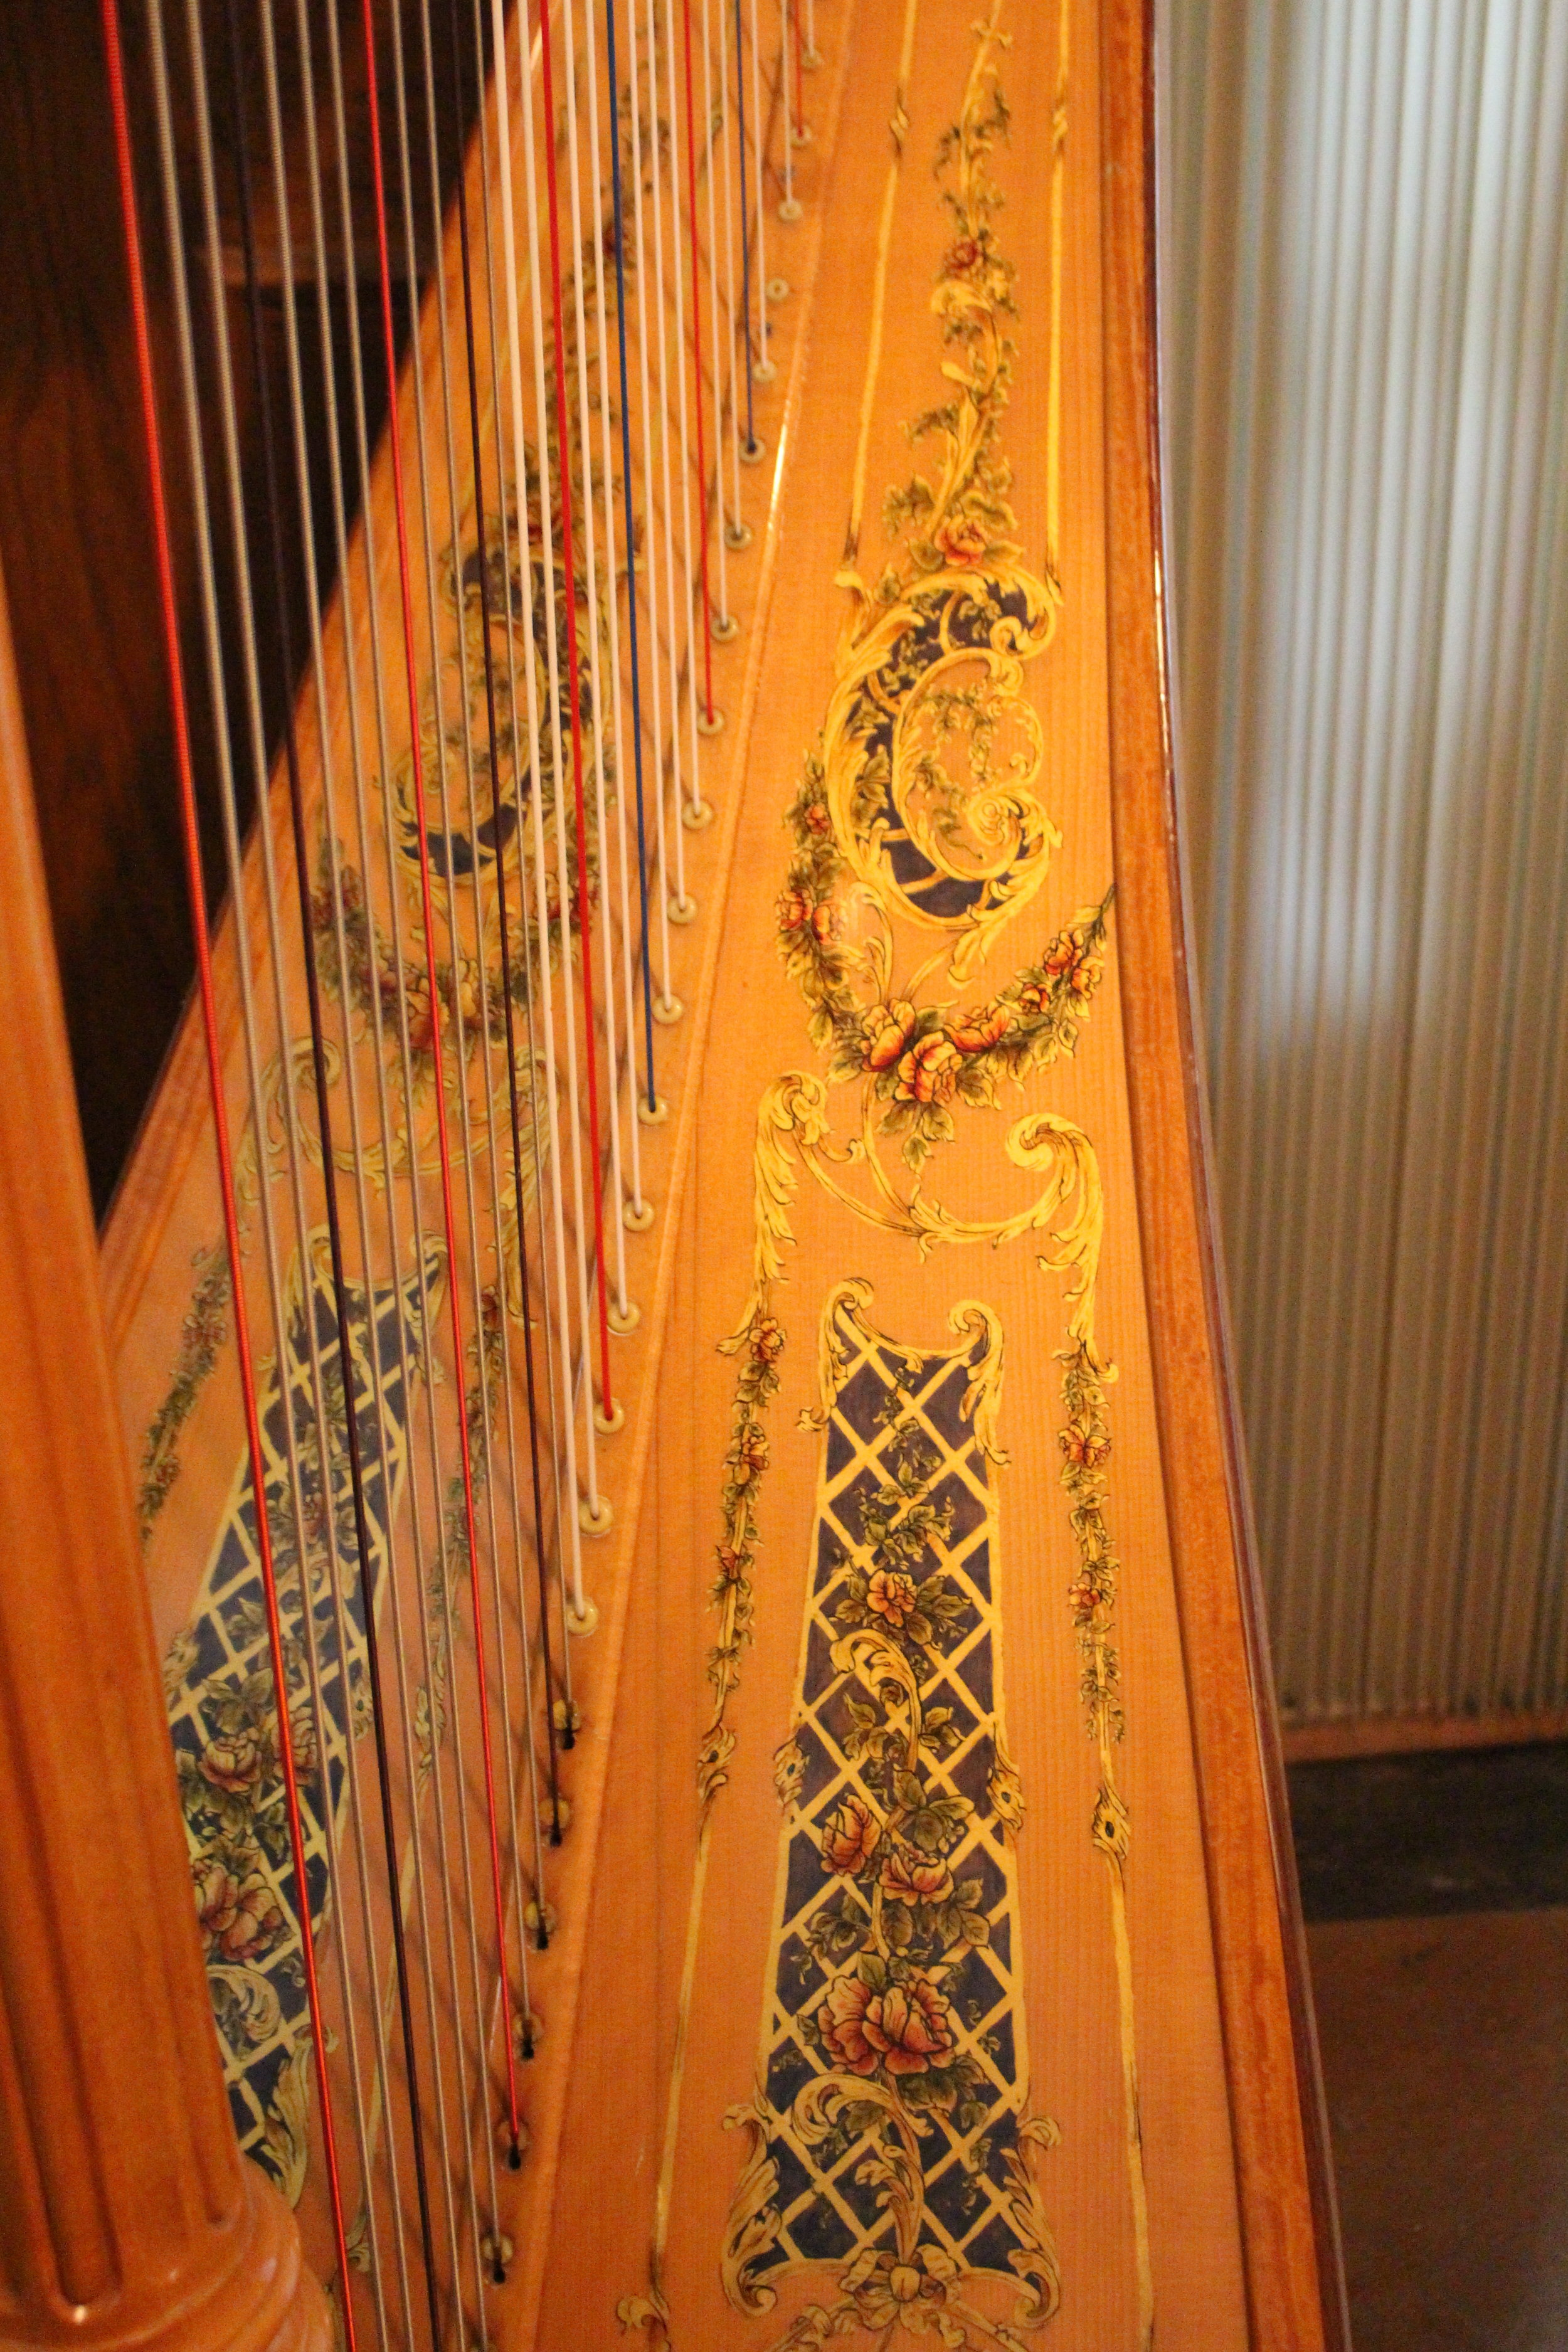 This harp took nearly 100 hours for David to paint!